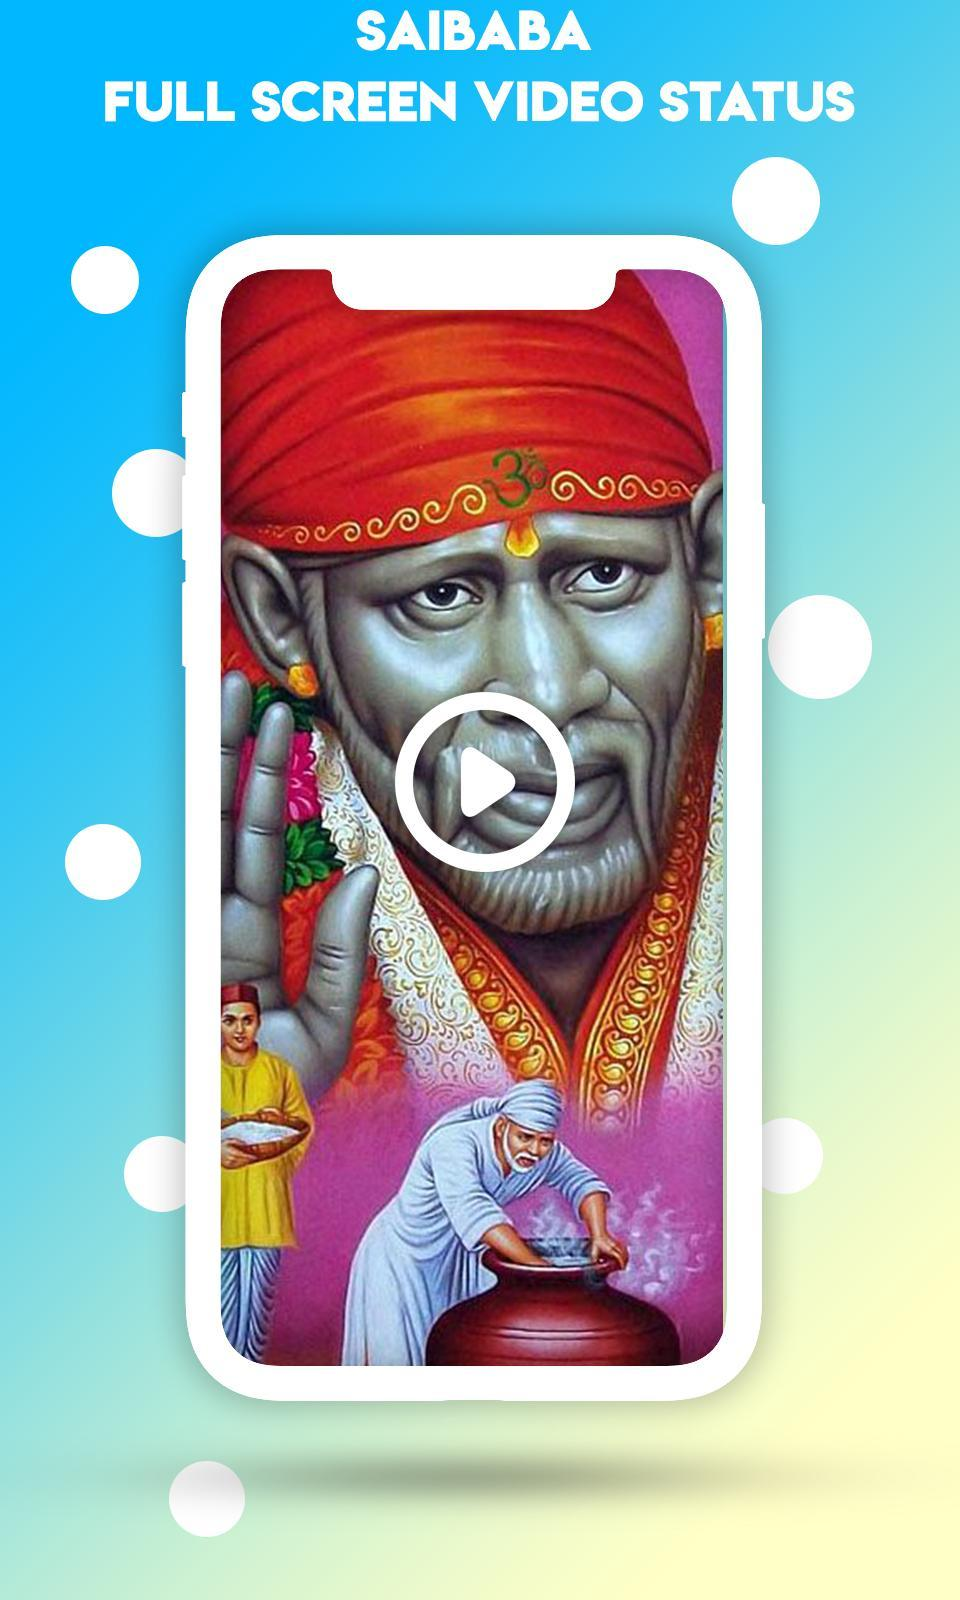 Saibaba Video Status For Android Apk Download